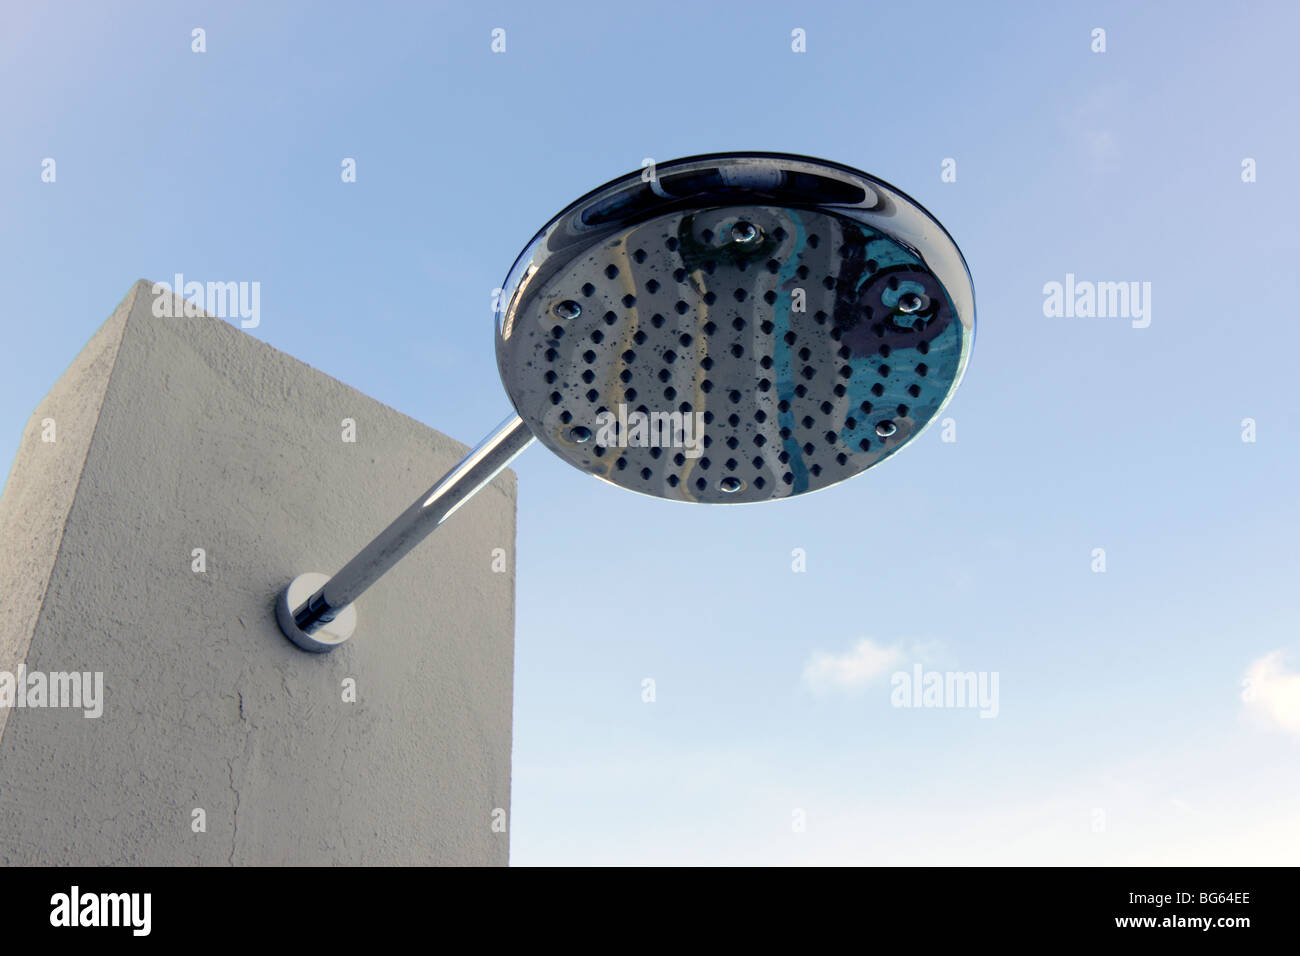 Rain Shower Stock Photos & Rain Shower Stock Images - Alamy